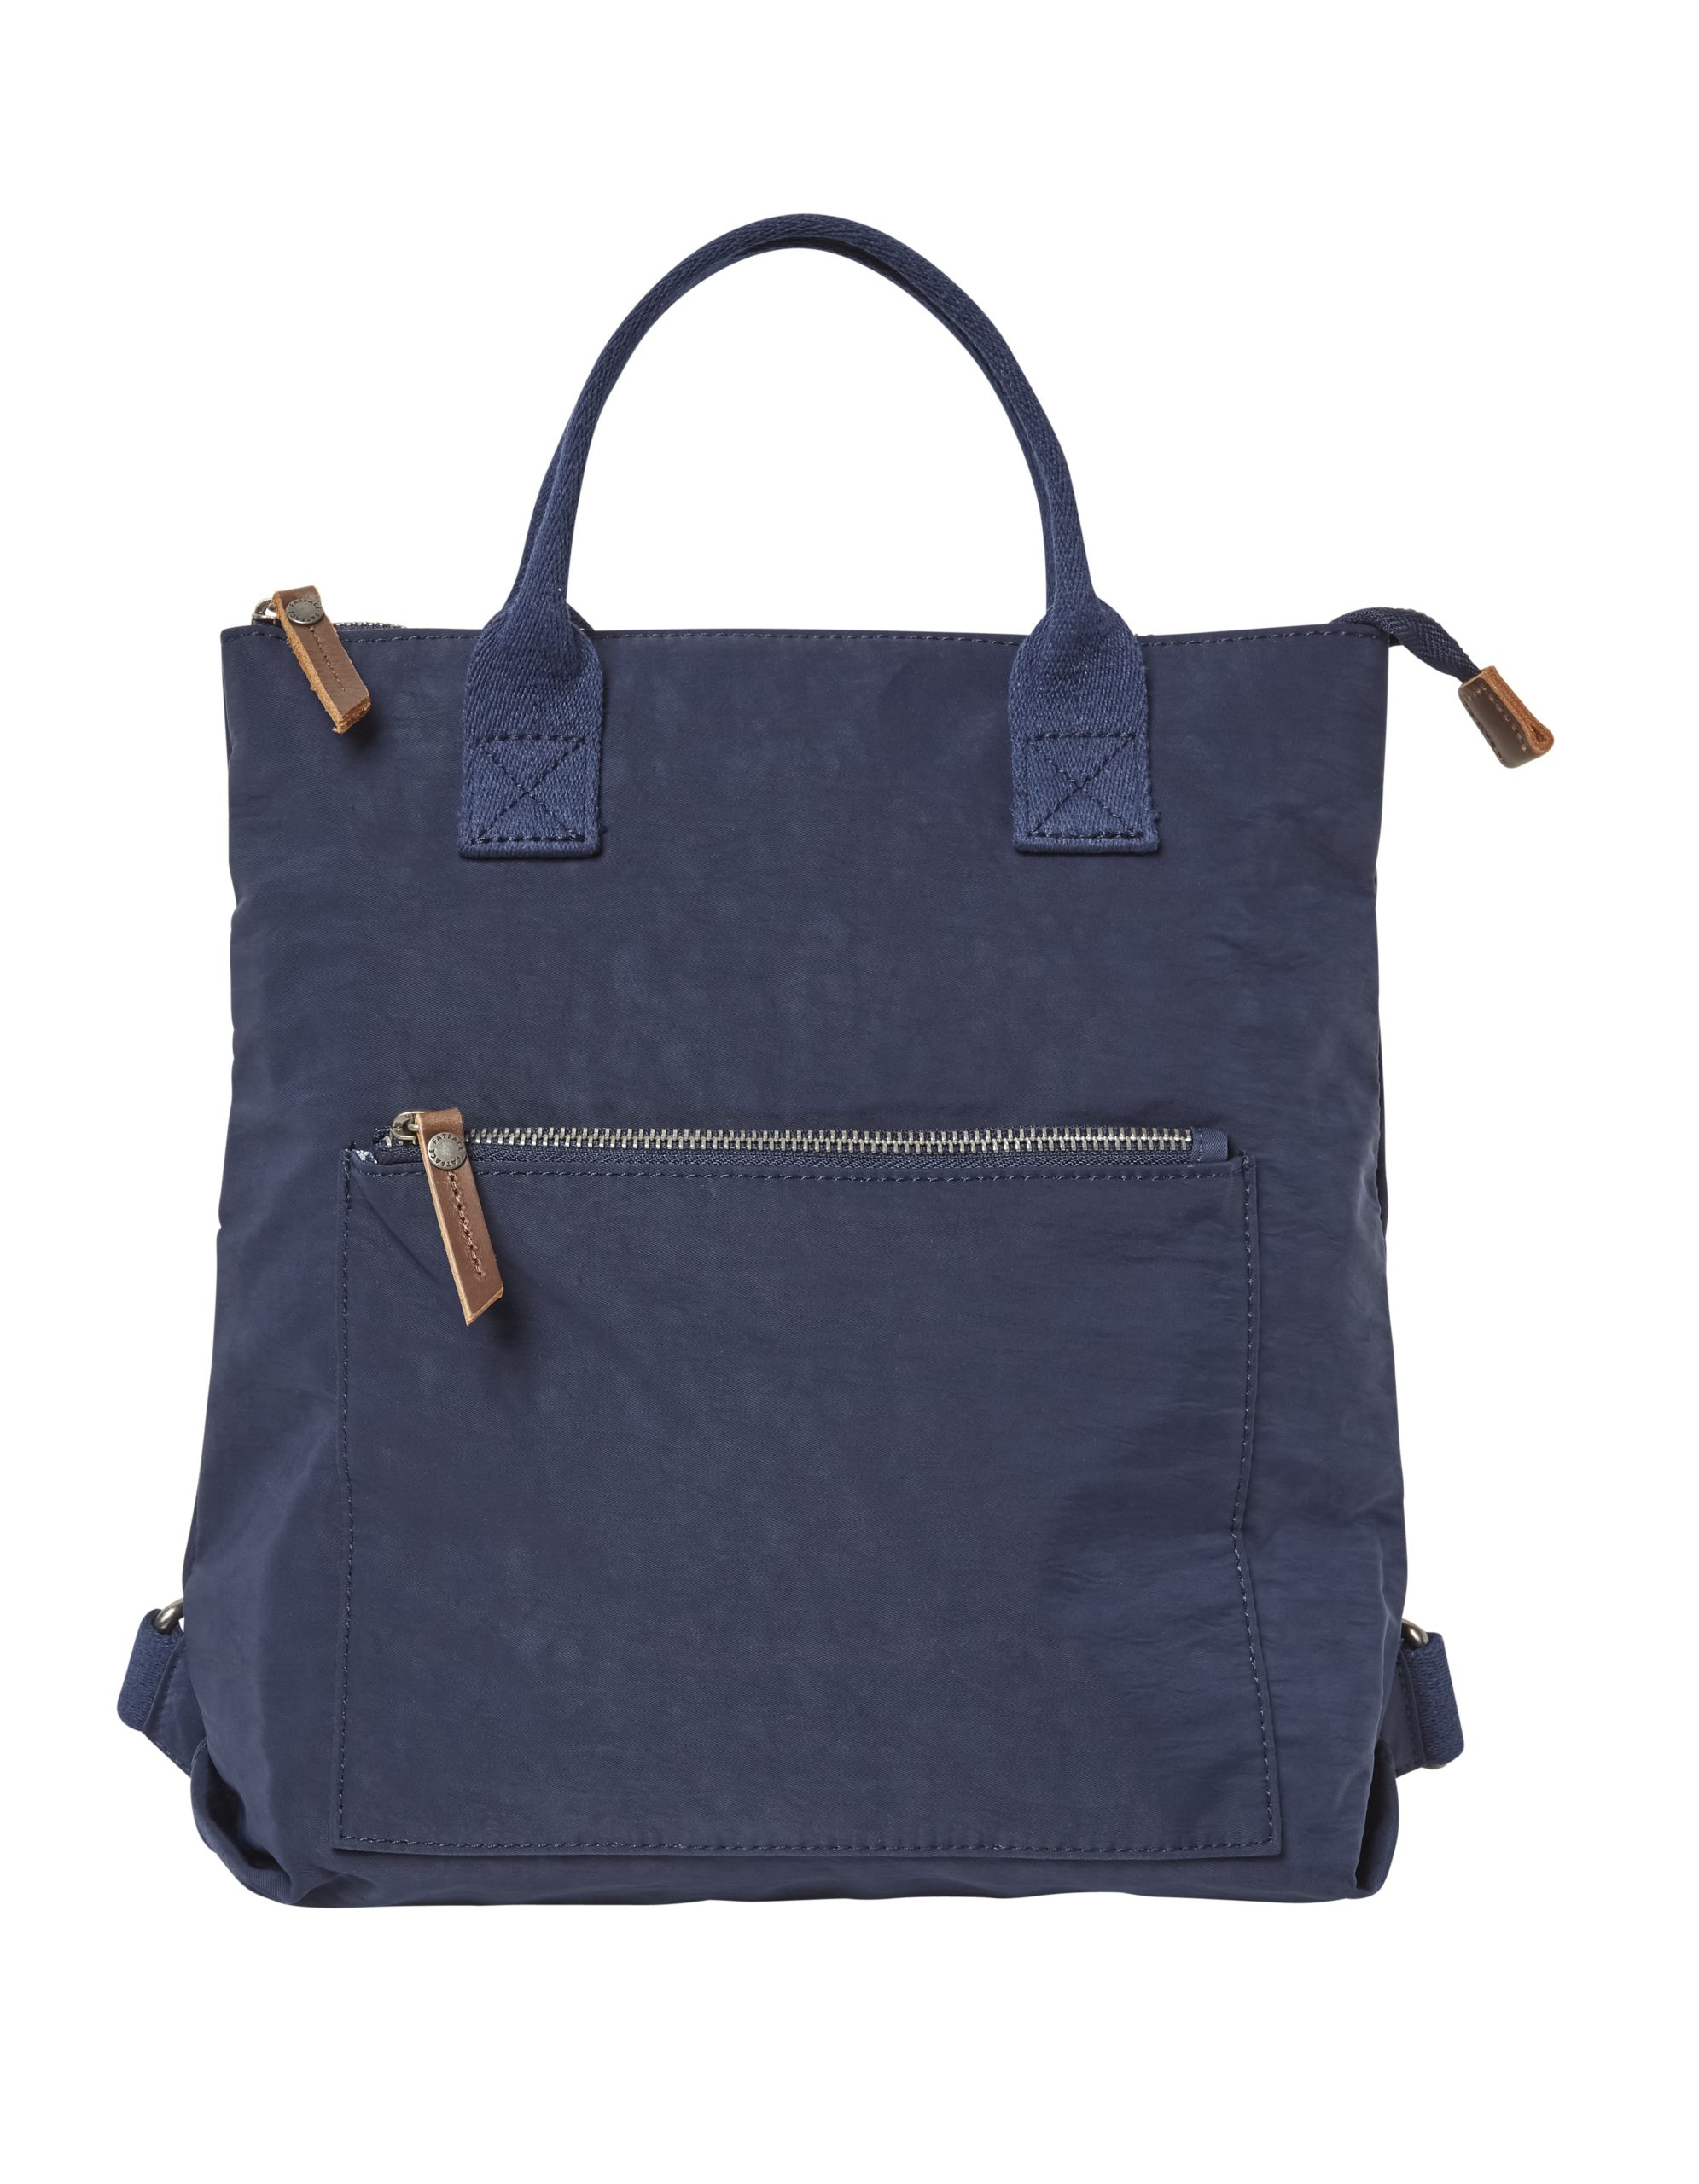 Back pack, £36, Fat Face